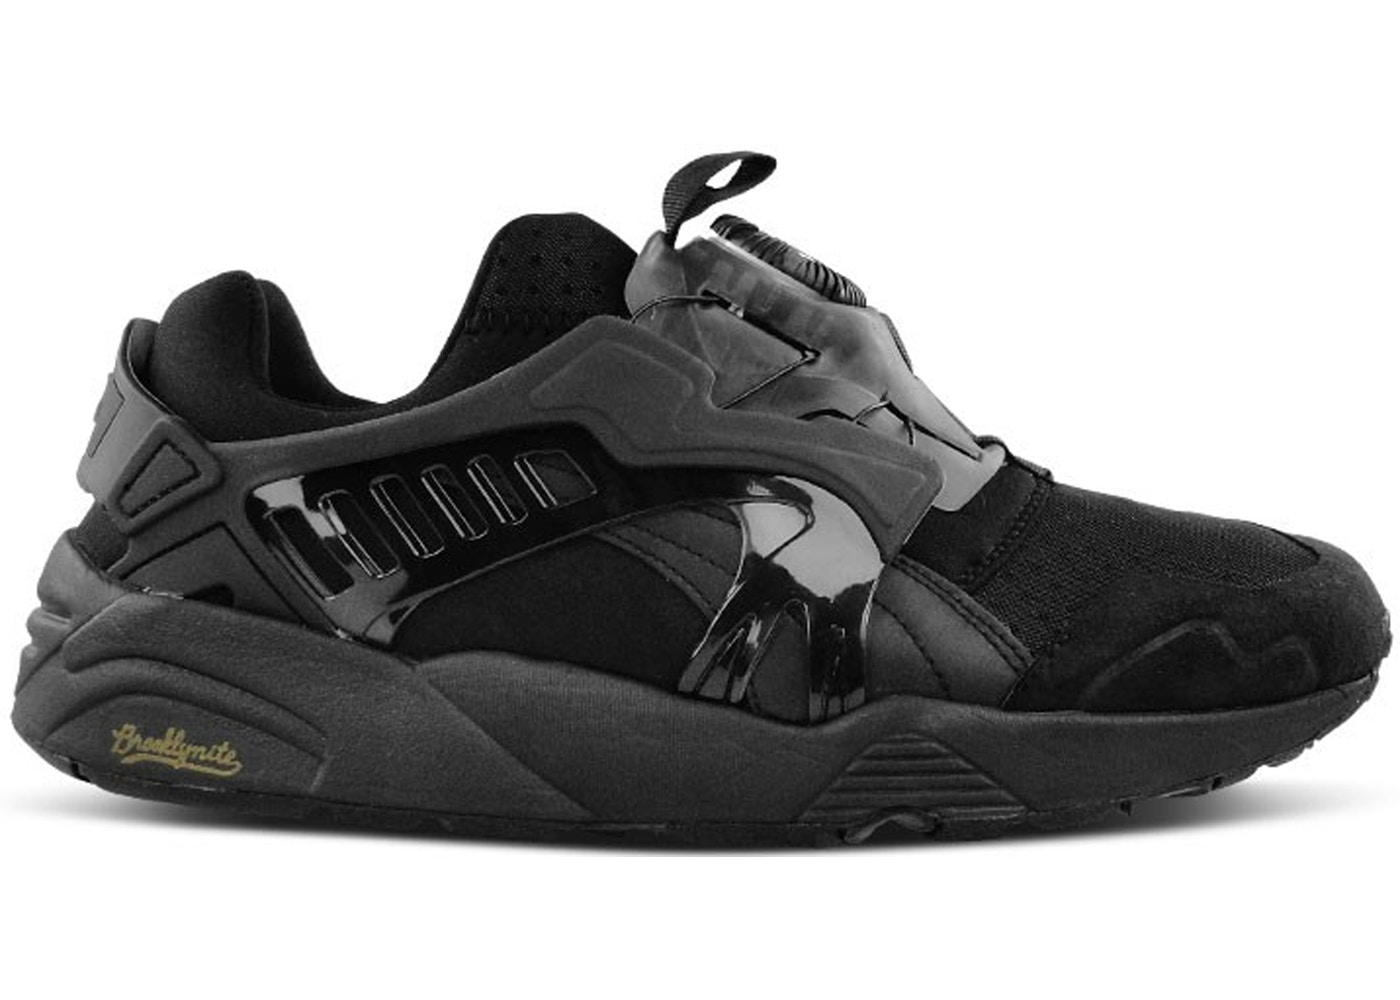 énorme réduction 63e1e 06360 Puma Disc Blaze Sophia Chang Brooklynite